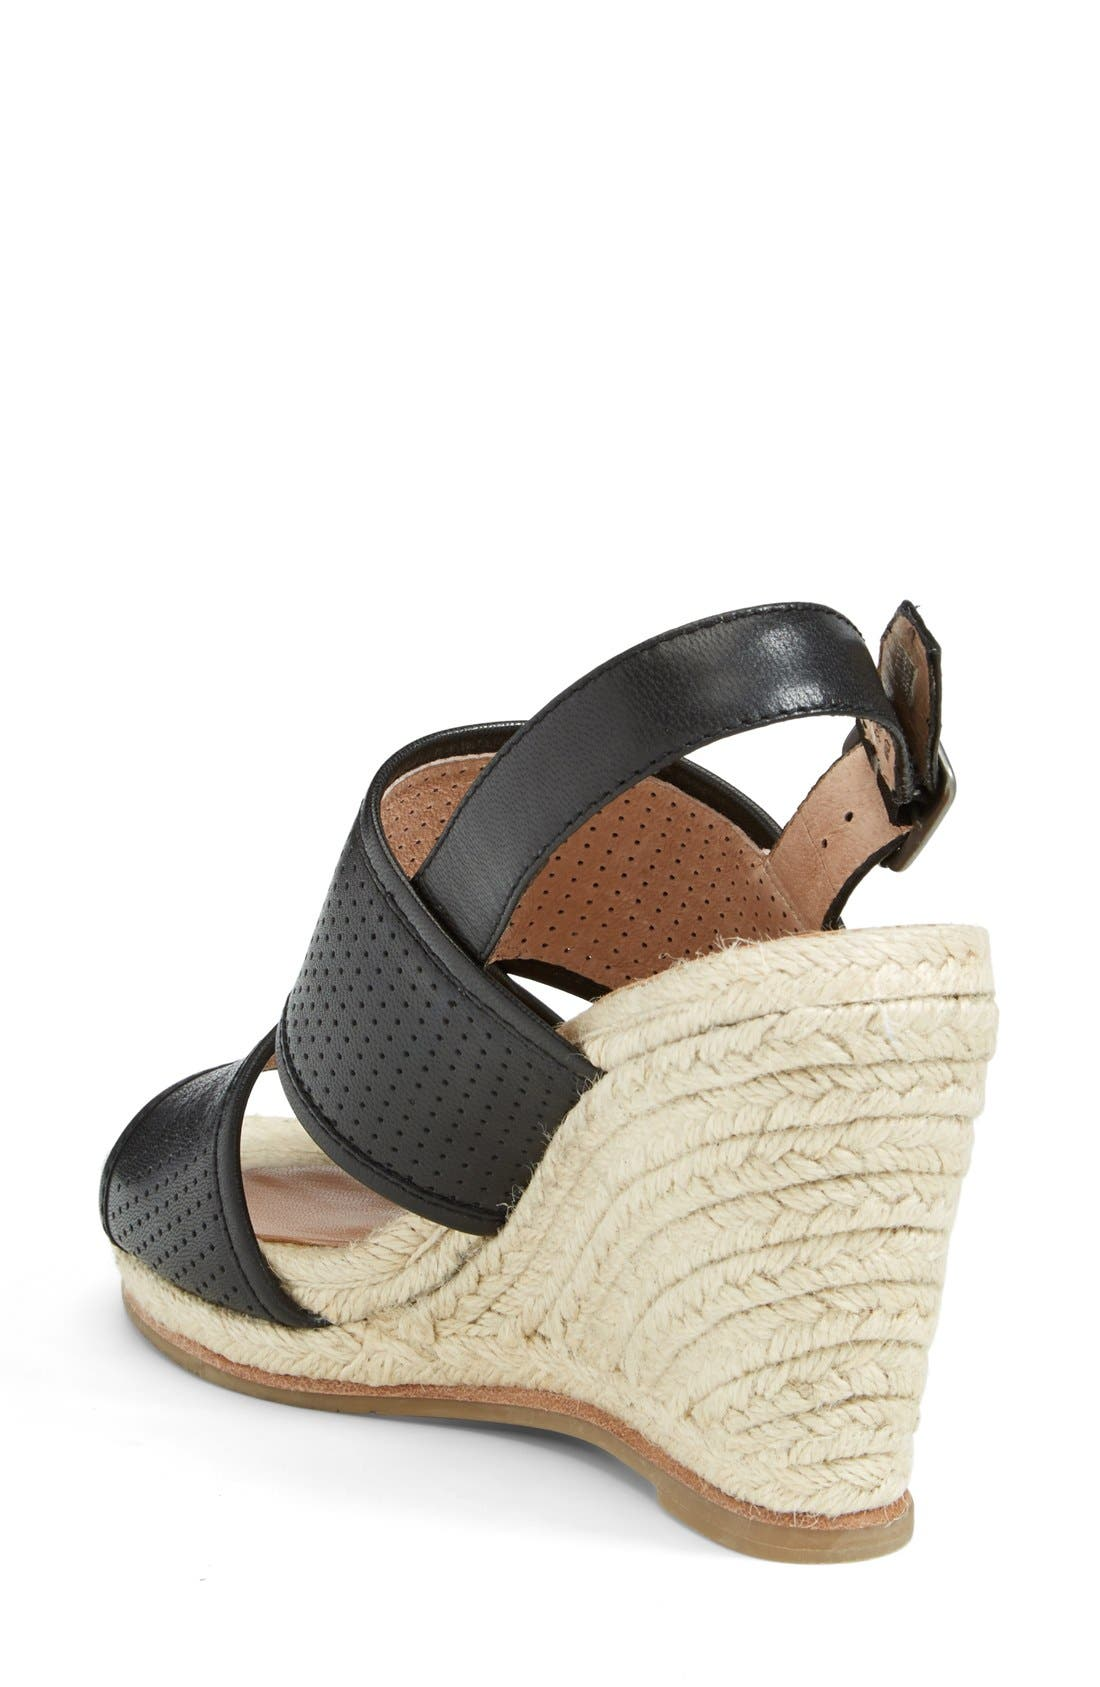 'Joyce' Perforated Espadrille Wedge Sandal,                             Alternate thumbnail 3, color,                             001